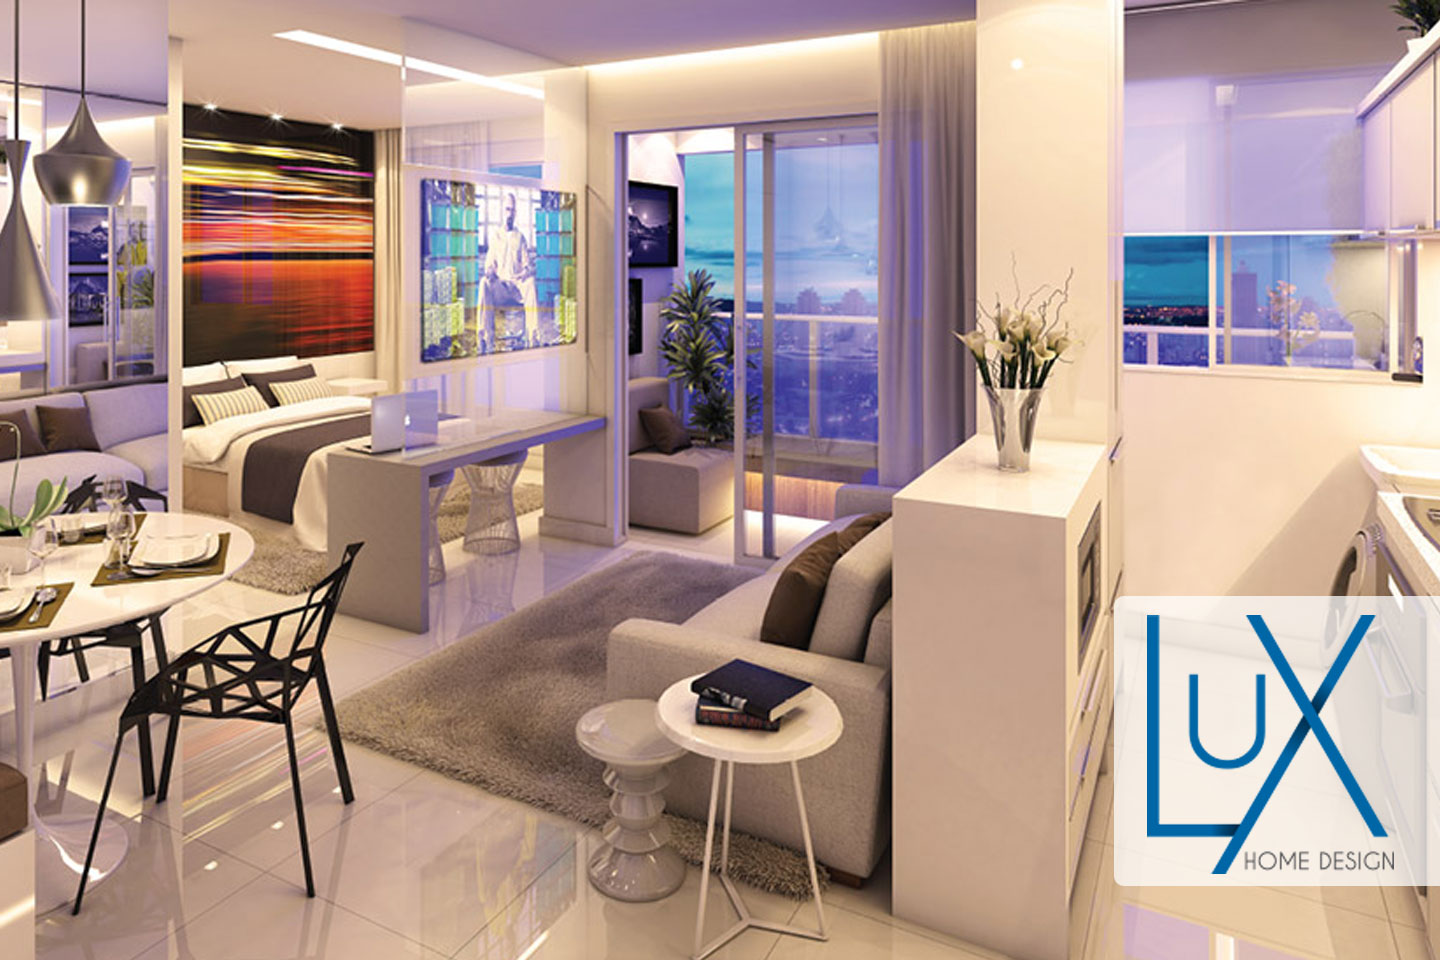 Lux-Home-Design